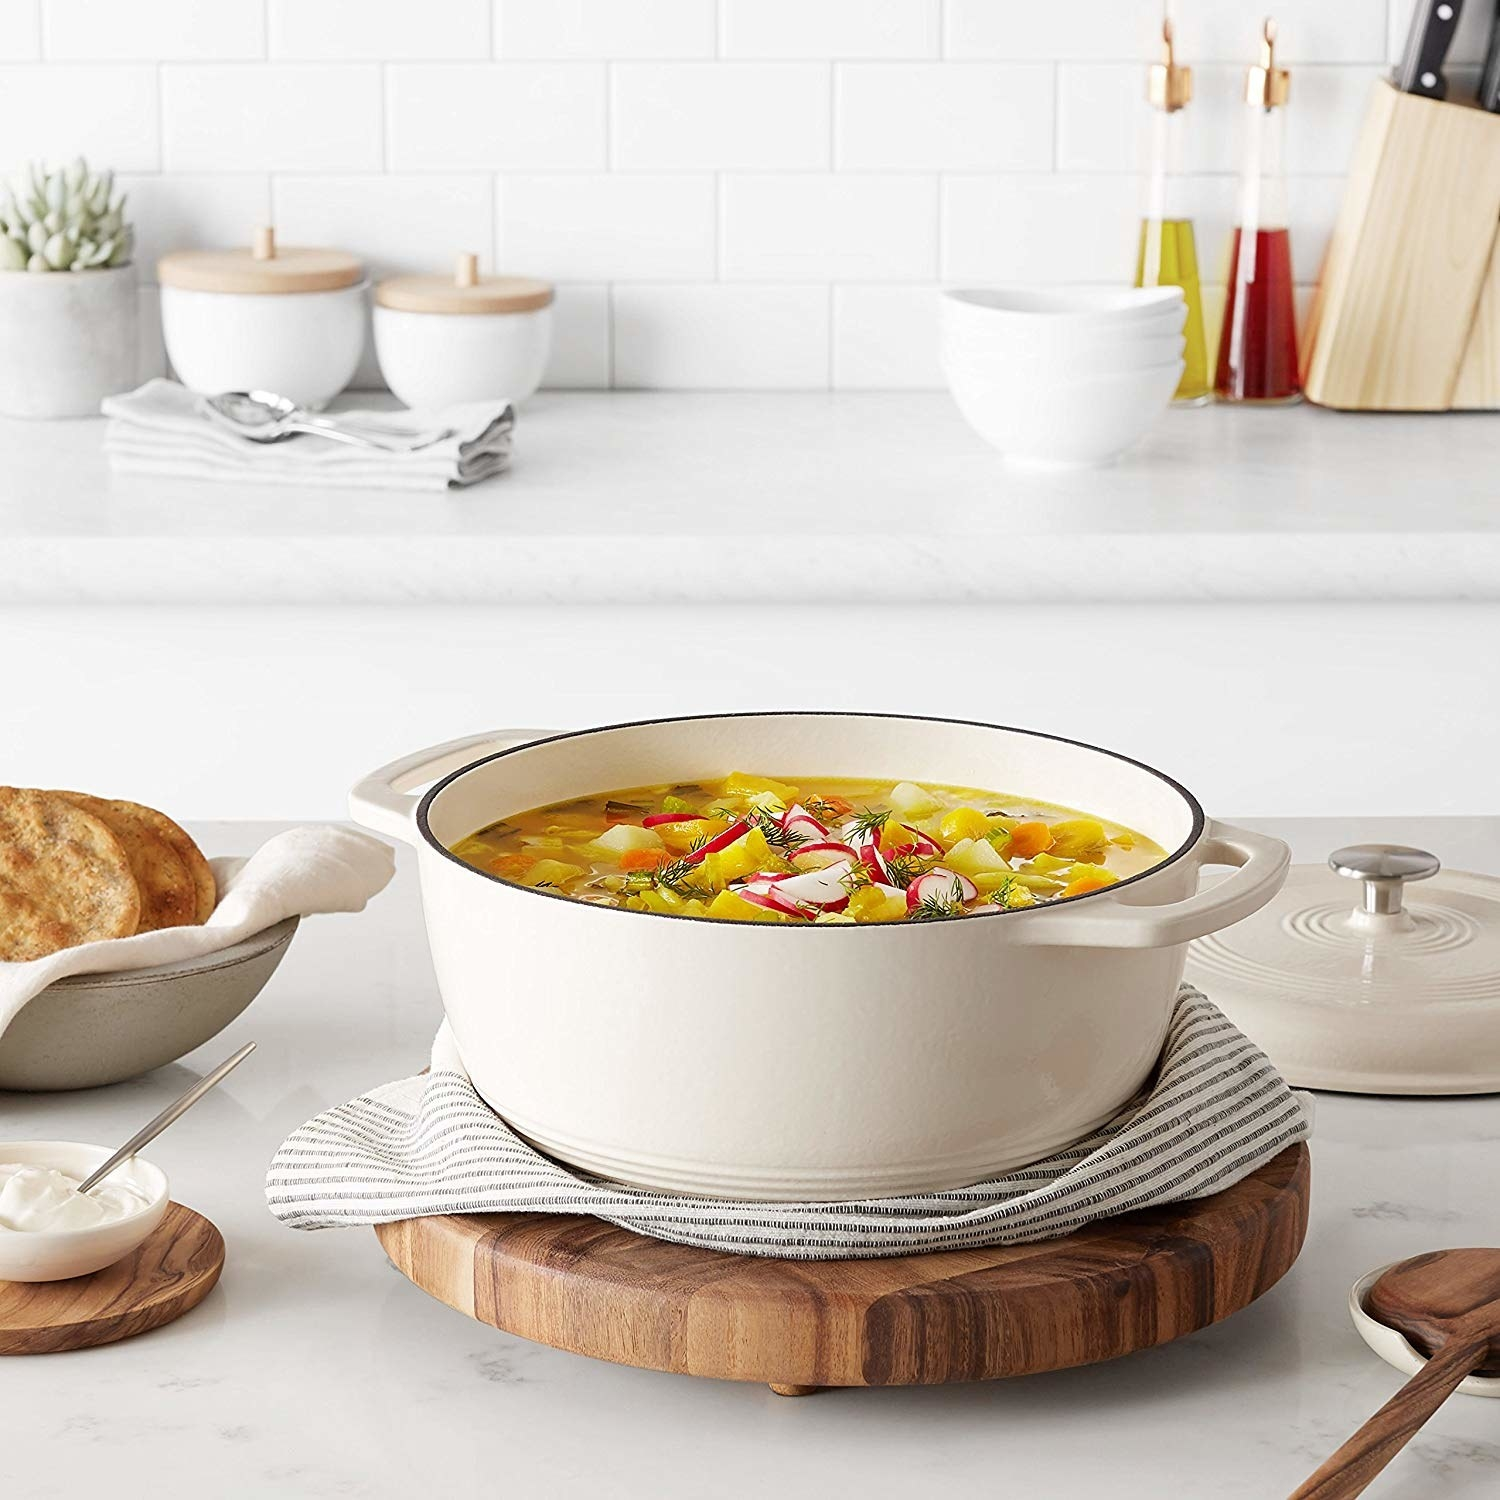 the Dutch oven in white filled with soup